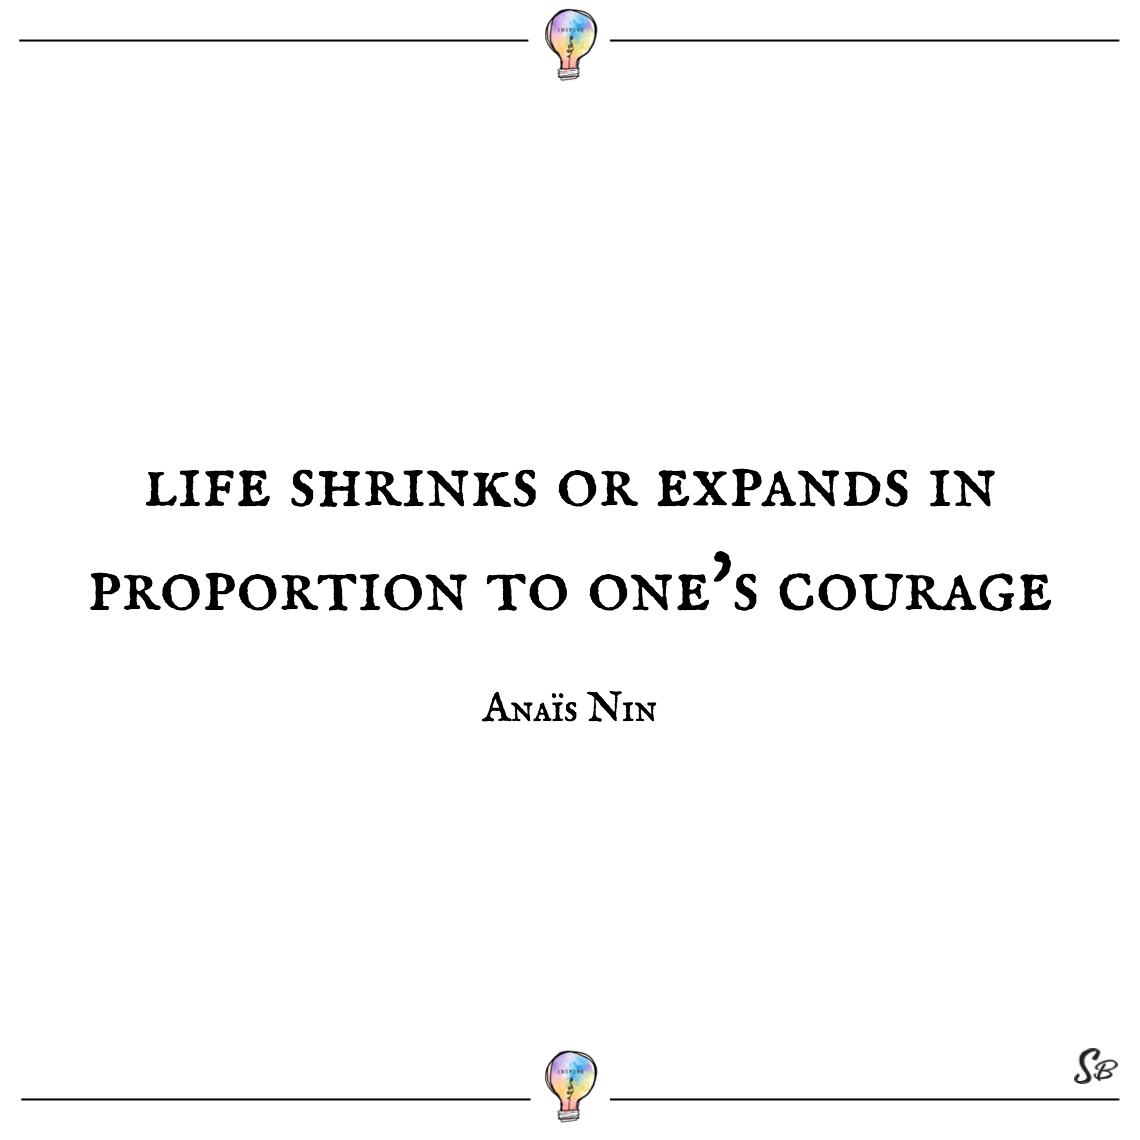 Life shrinks or expands in proportion to one's courage anaïs nin confidence inspiring quotes